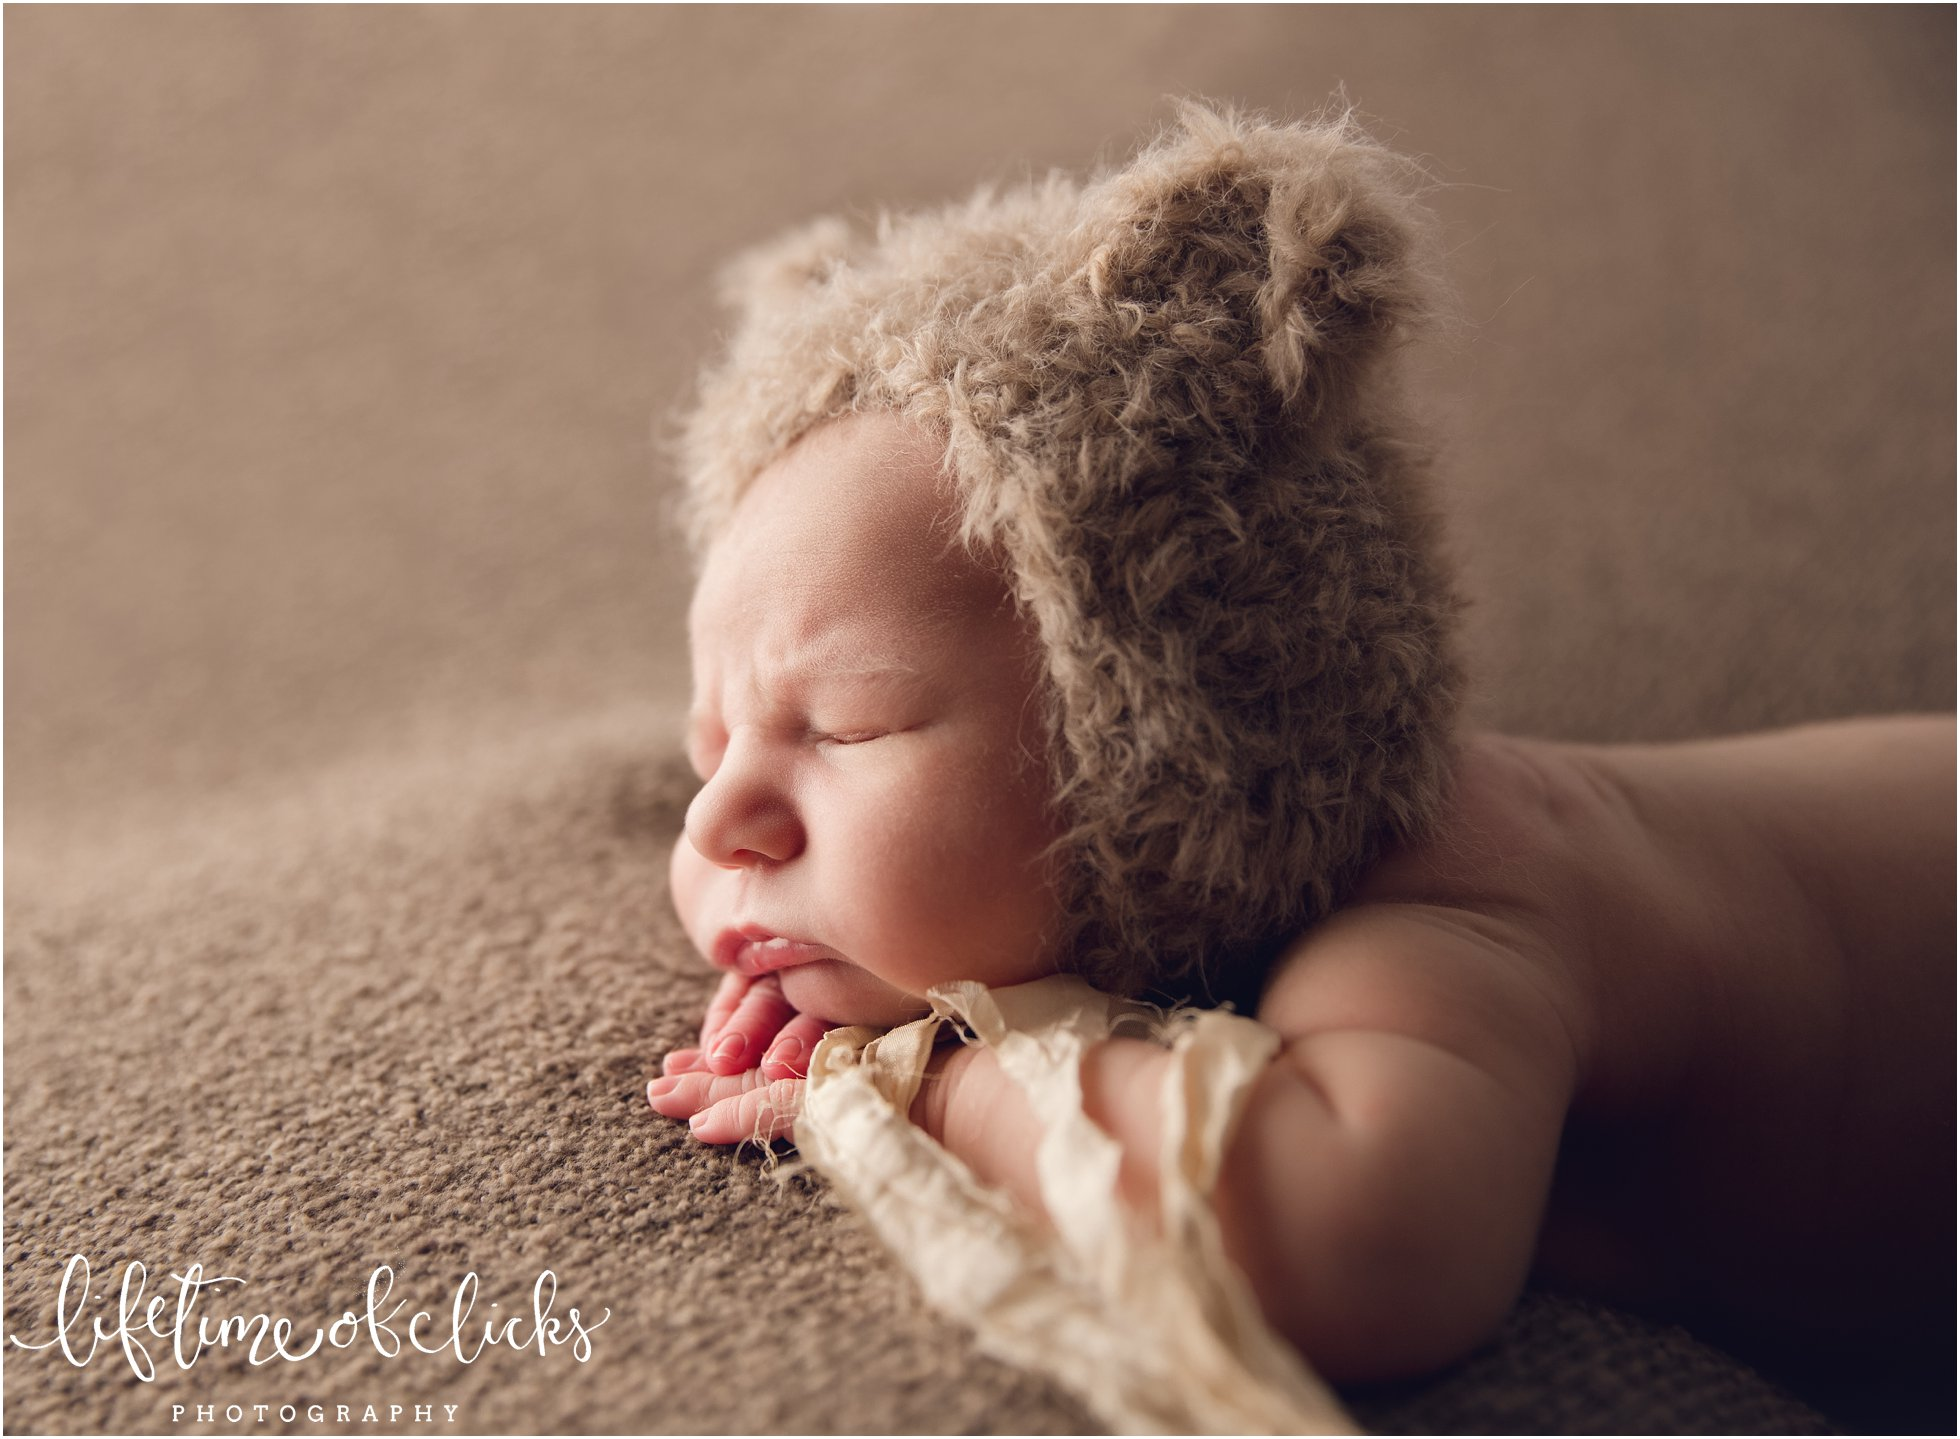 Baby boy with bear hat | Photo by Lifetime of Clicks Photography